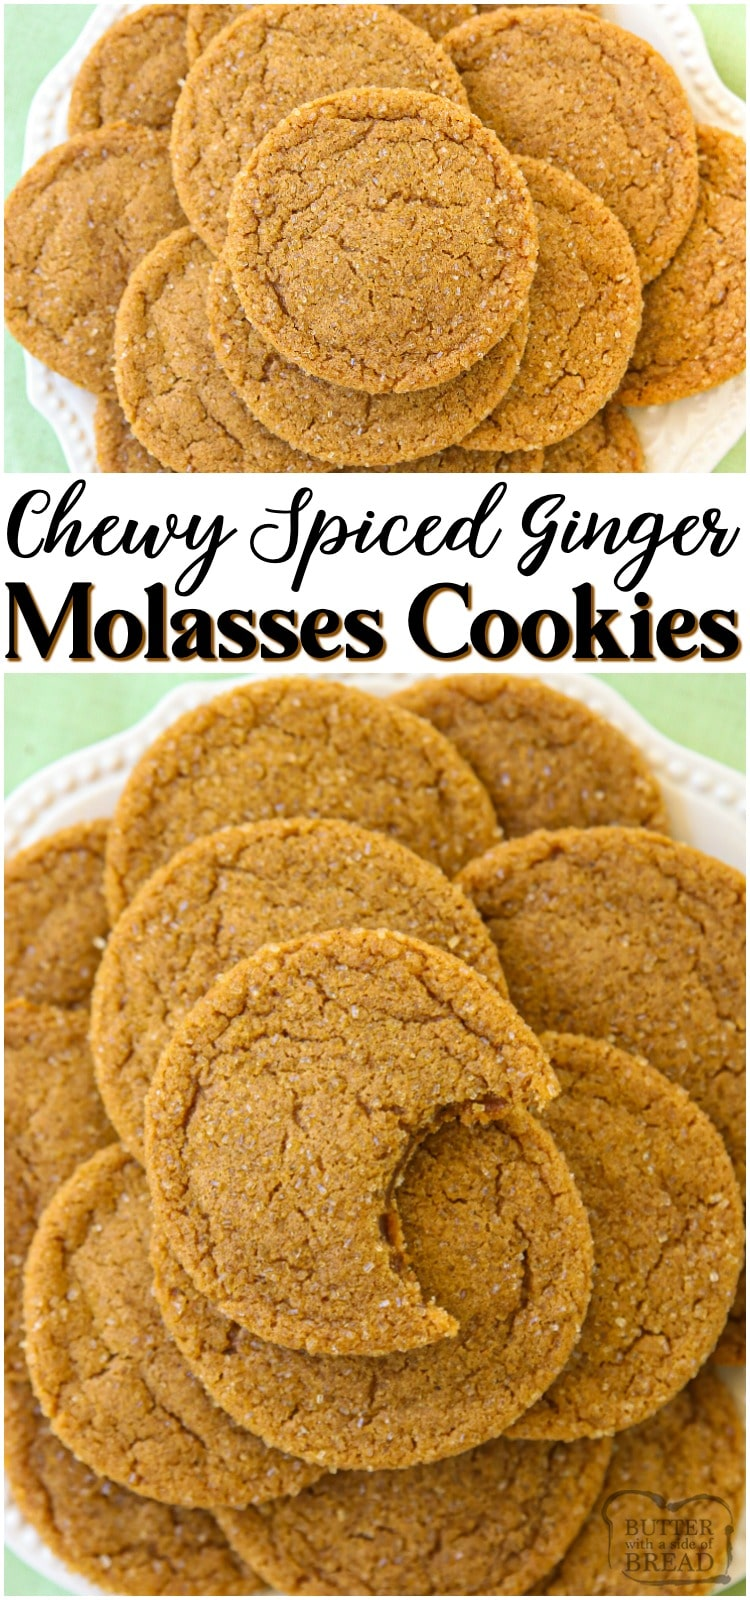 Spiced Ginger Cookies made with molasses and a lovely blend of holiday spices. Perfect soft Ginger Molasses Cookies for Christmas! #ginger #baking #cookies #spiced #molasses #Christmas #holidaybaking #ChristmasCookies from BUTTER WITH A SIDE OF BREAD